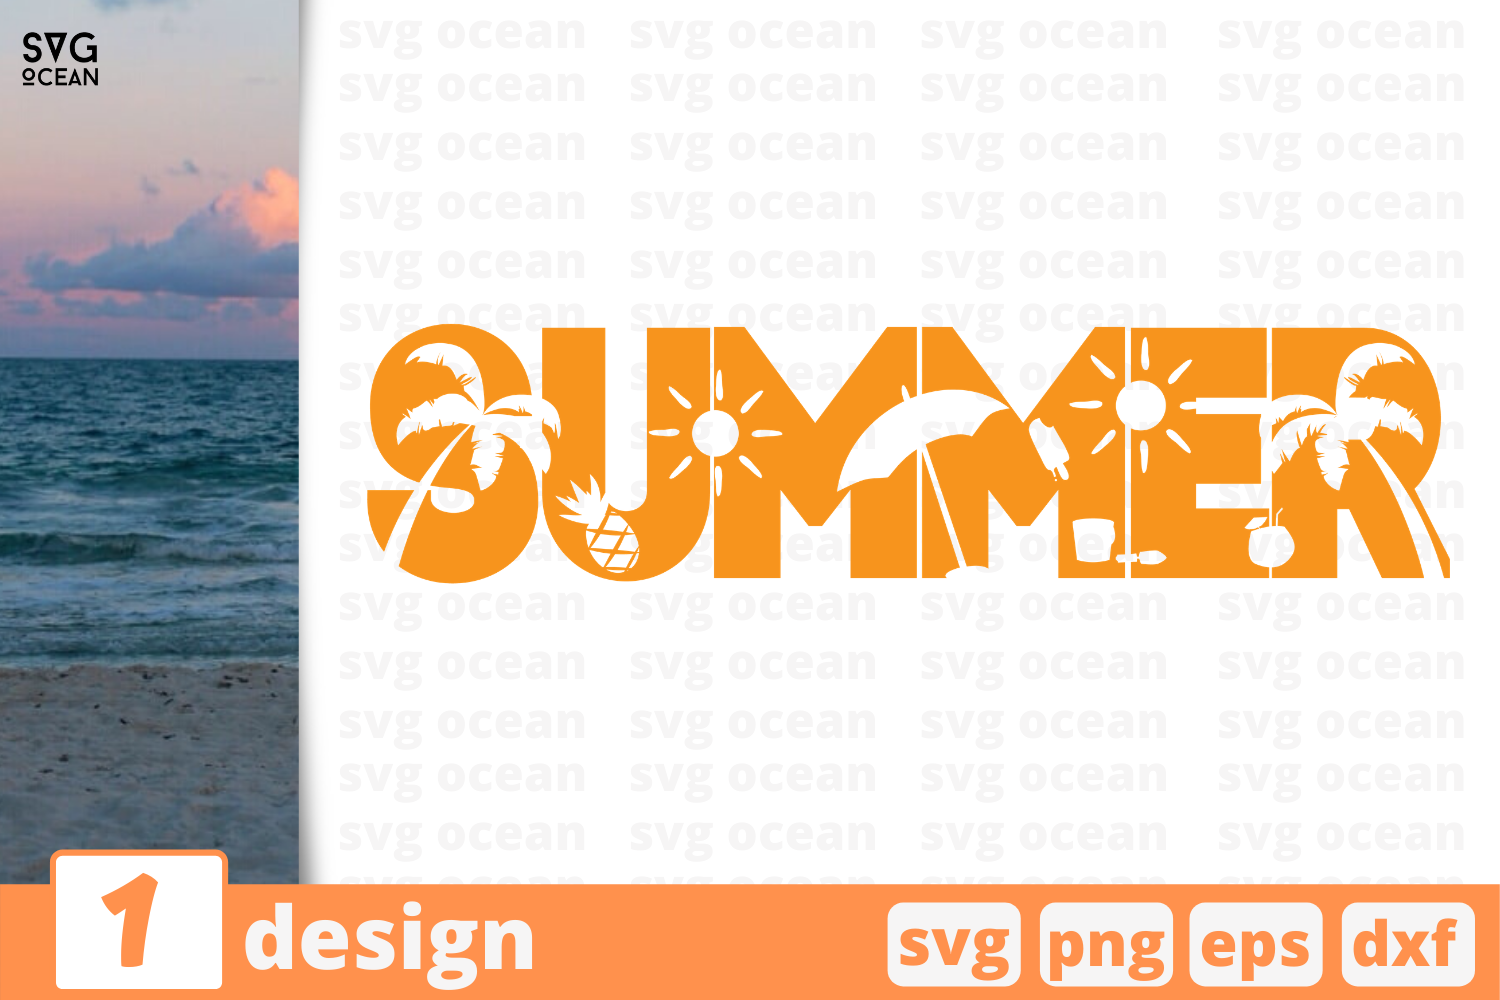 Download Free 1 Summer Svg Bundle Summer Cricut Svg Graphic By Svgocean for Cricut Explore, Silhouette and other cutting machines.